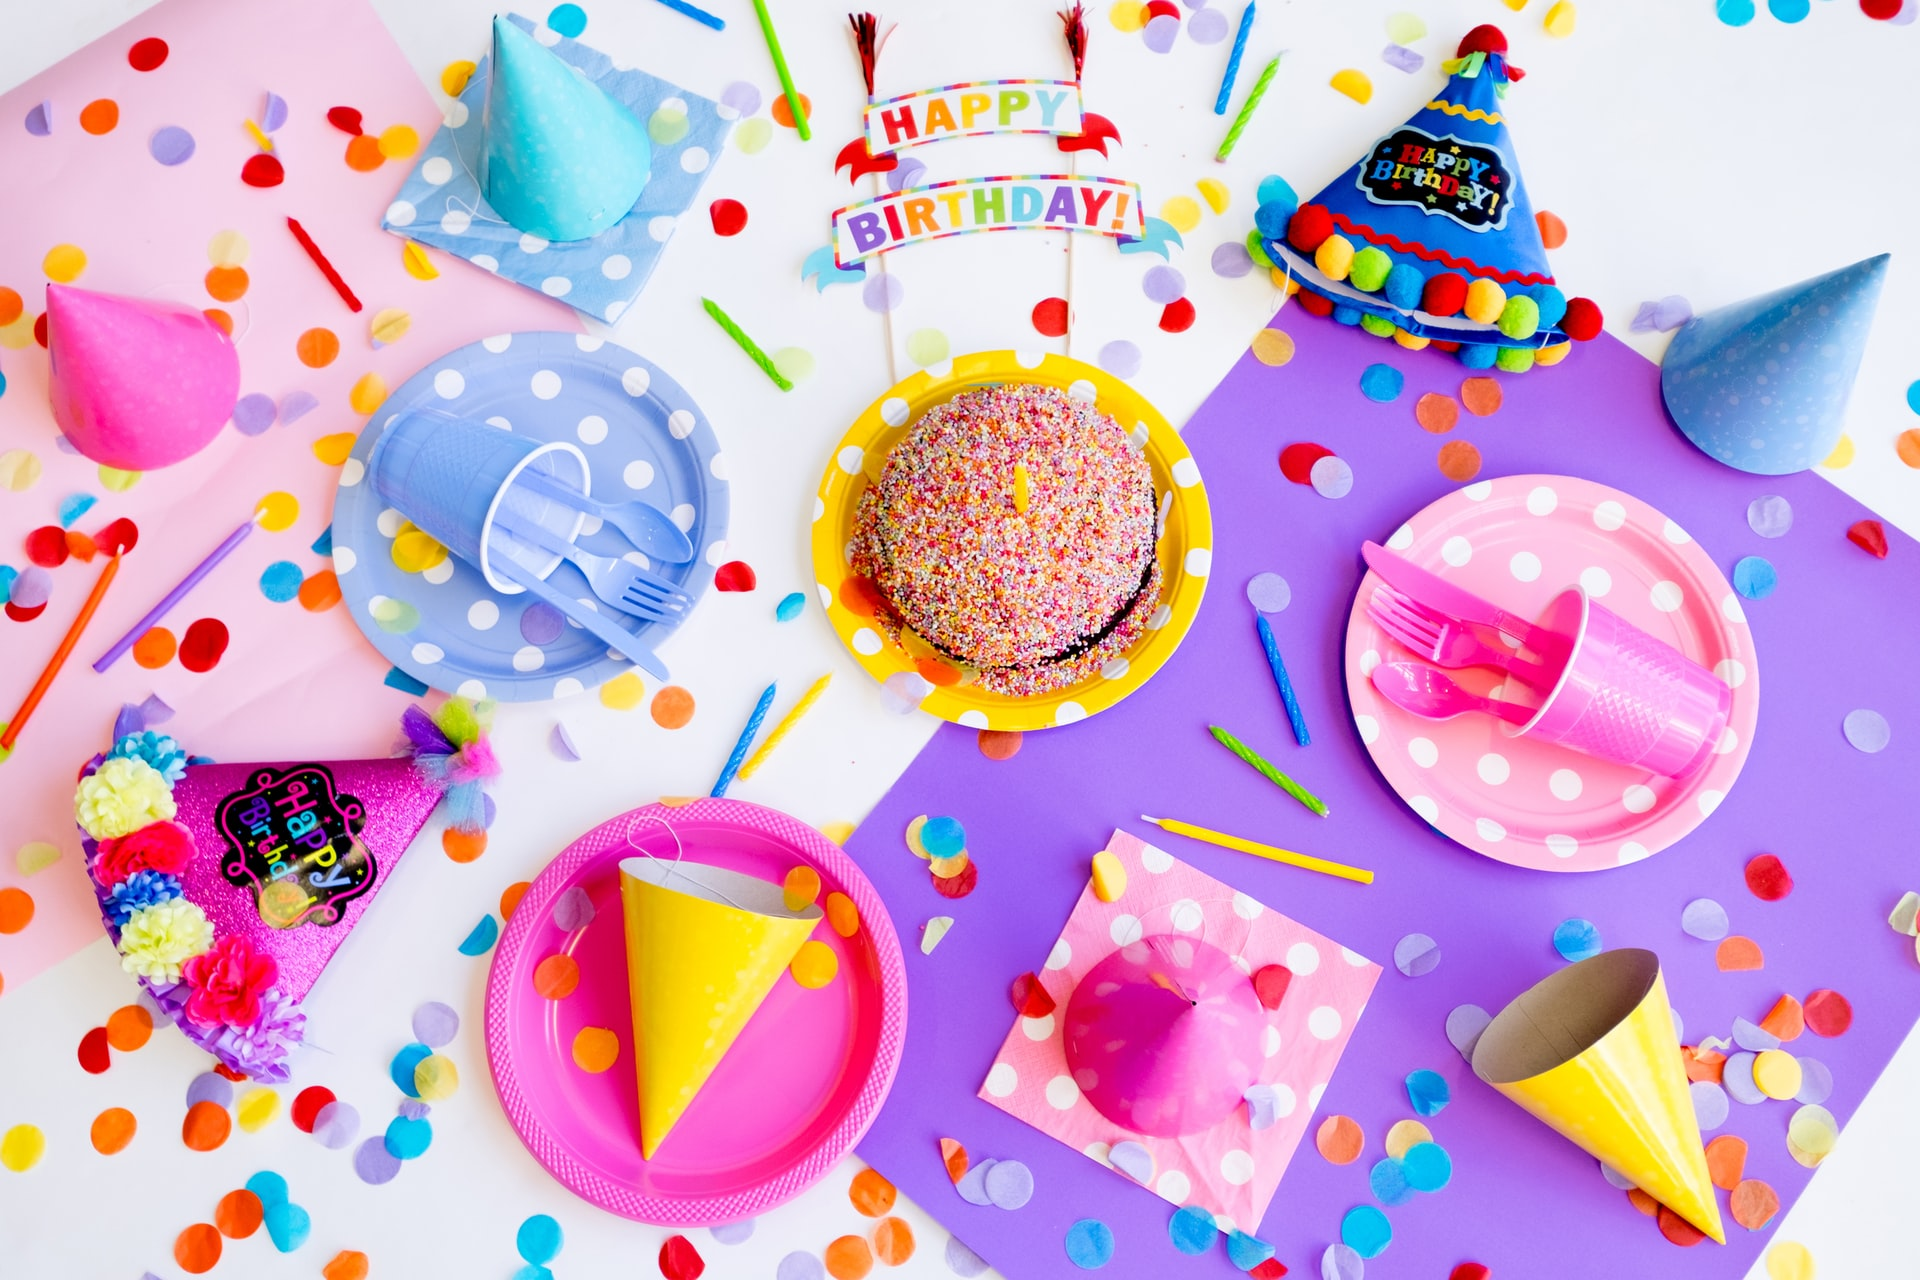 Planning A Birthday Party For Your Kid? Here's Some Helpful Advice